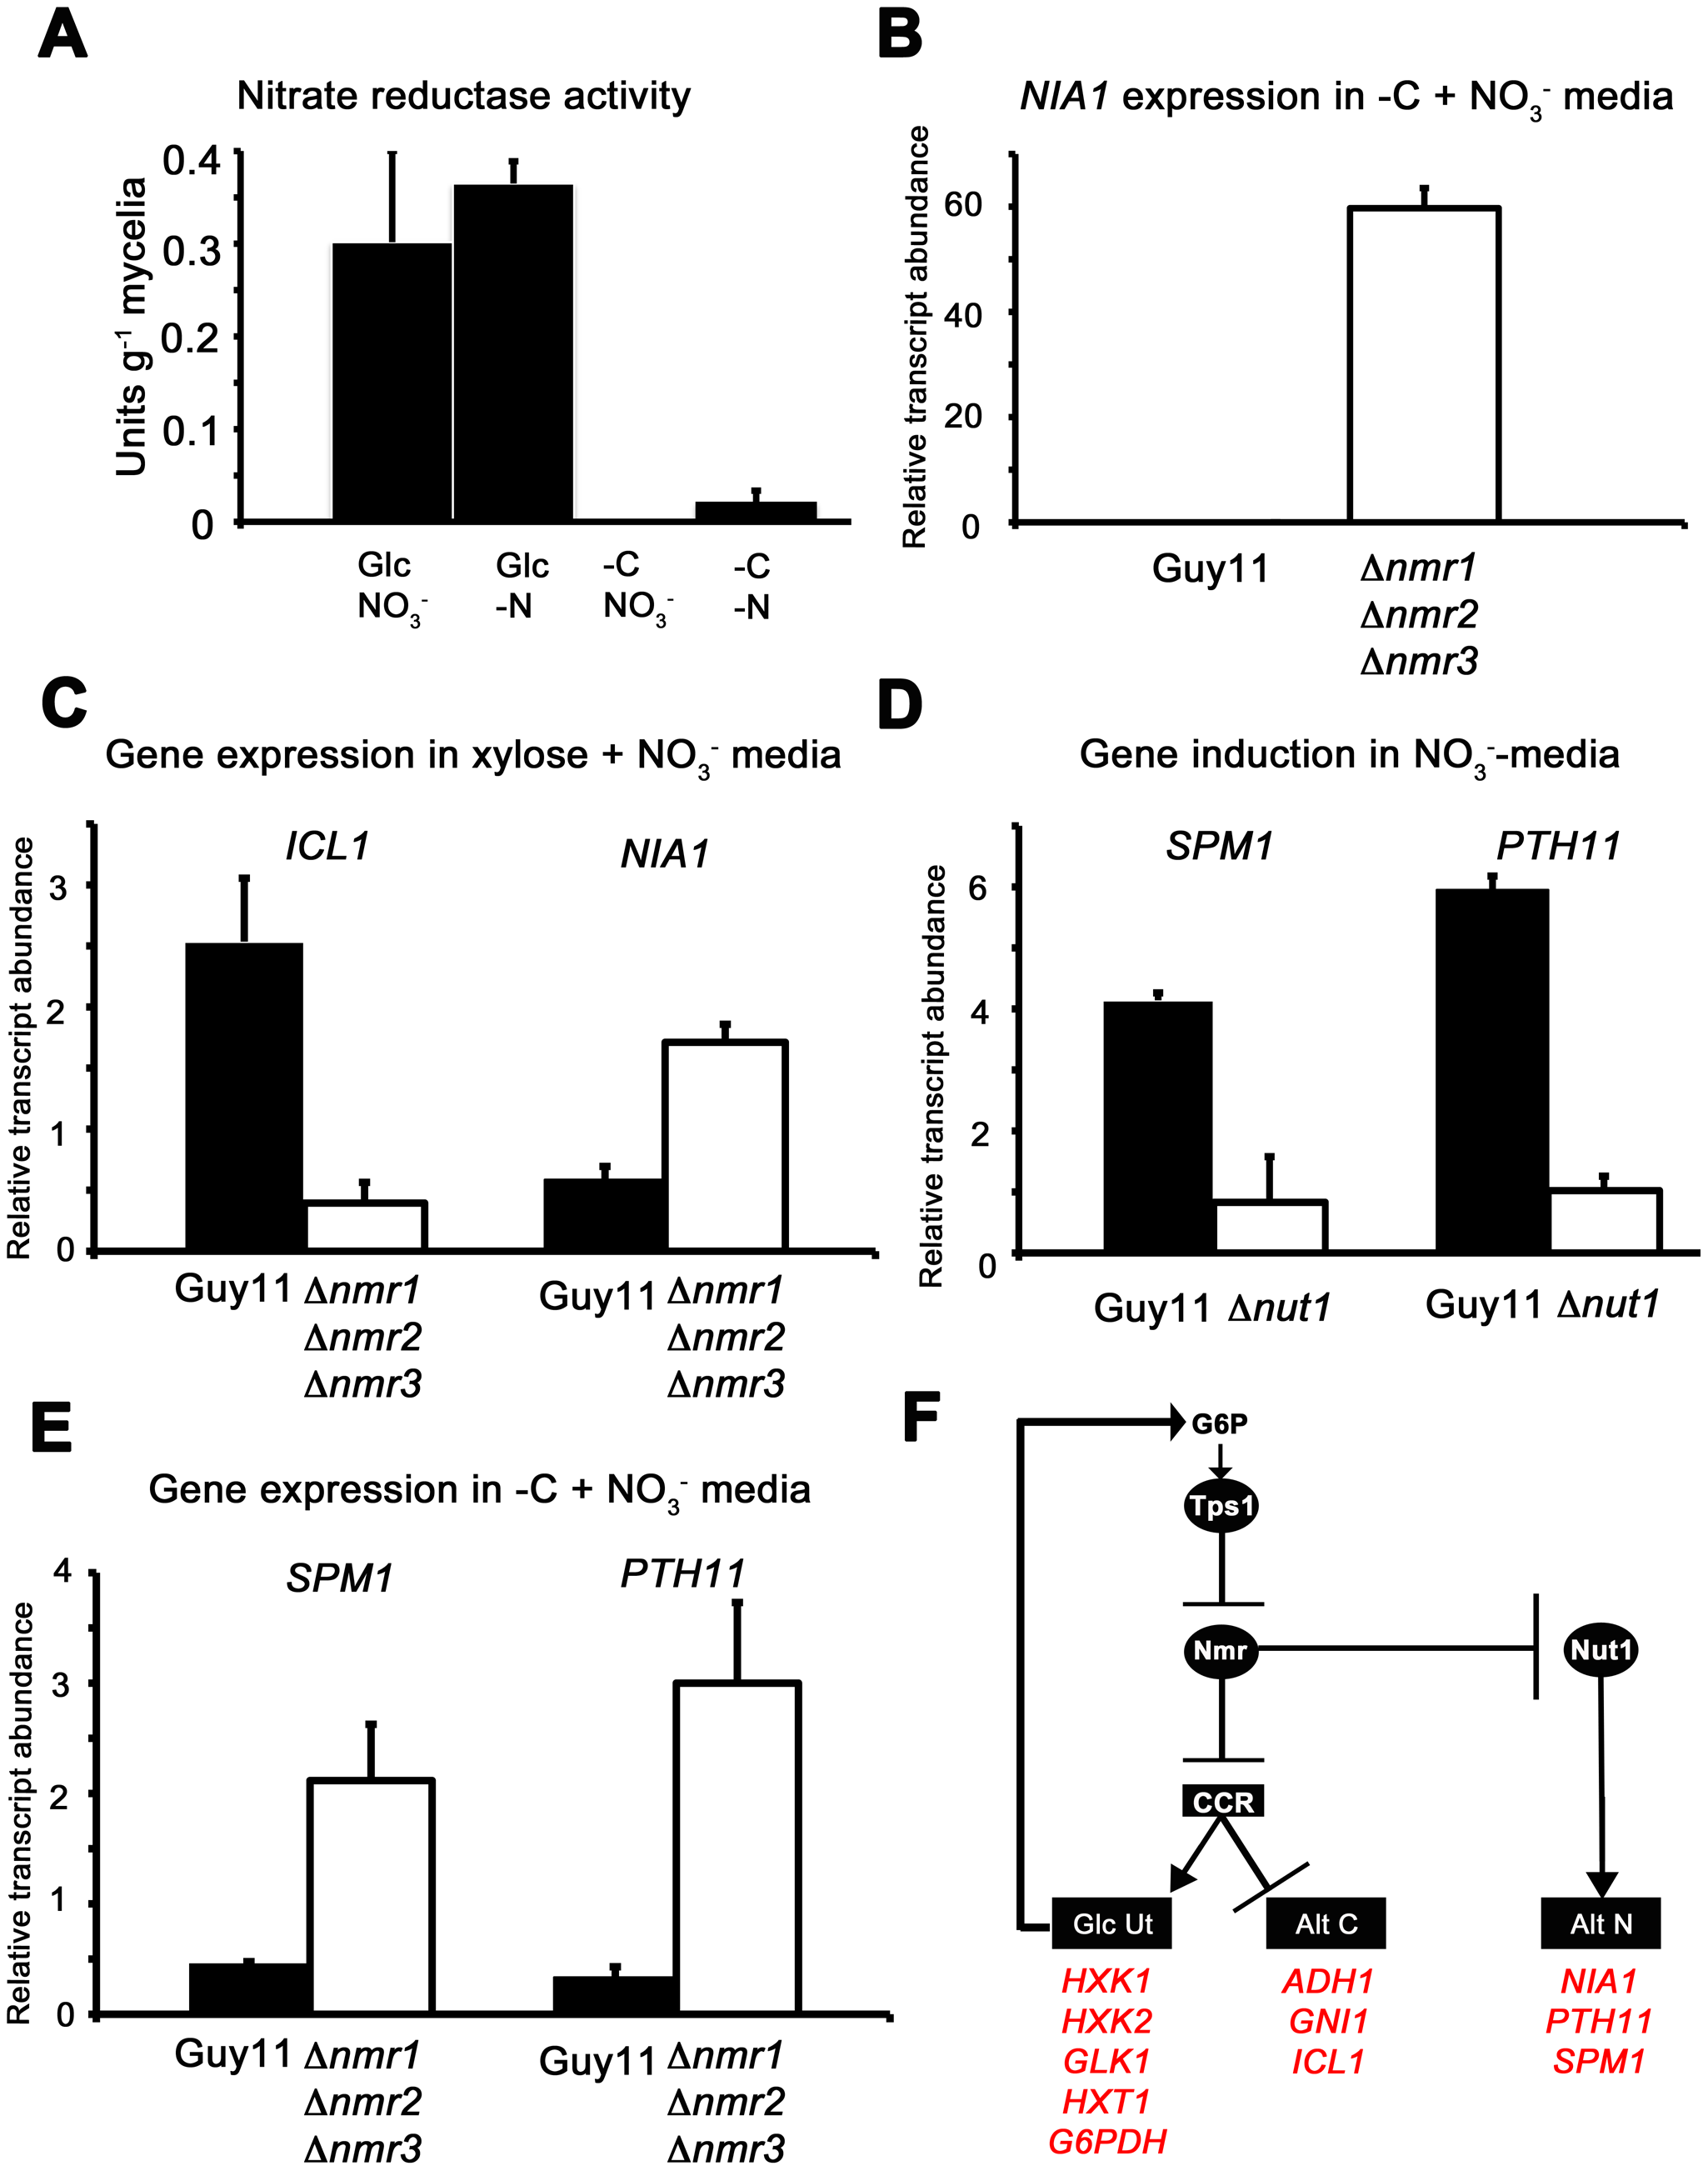 The Nmr1-3 inhibitor proteins regulate nitrogen and carbon metabolism in response to G6P.